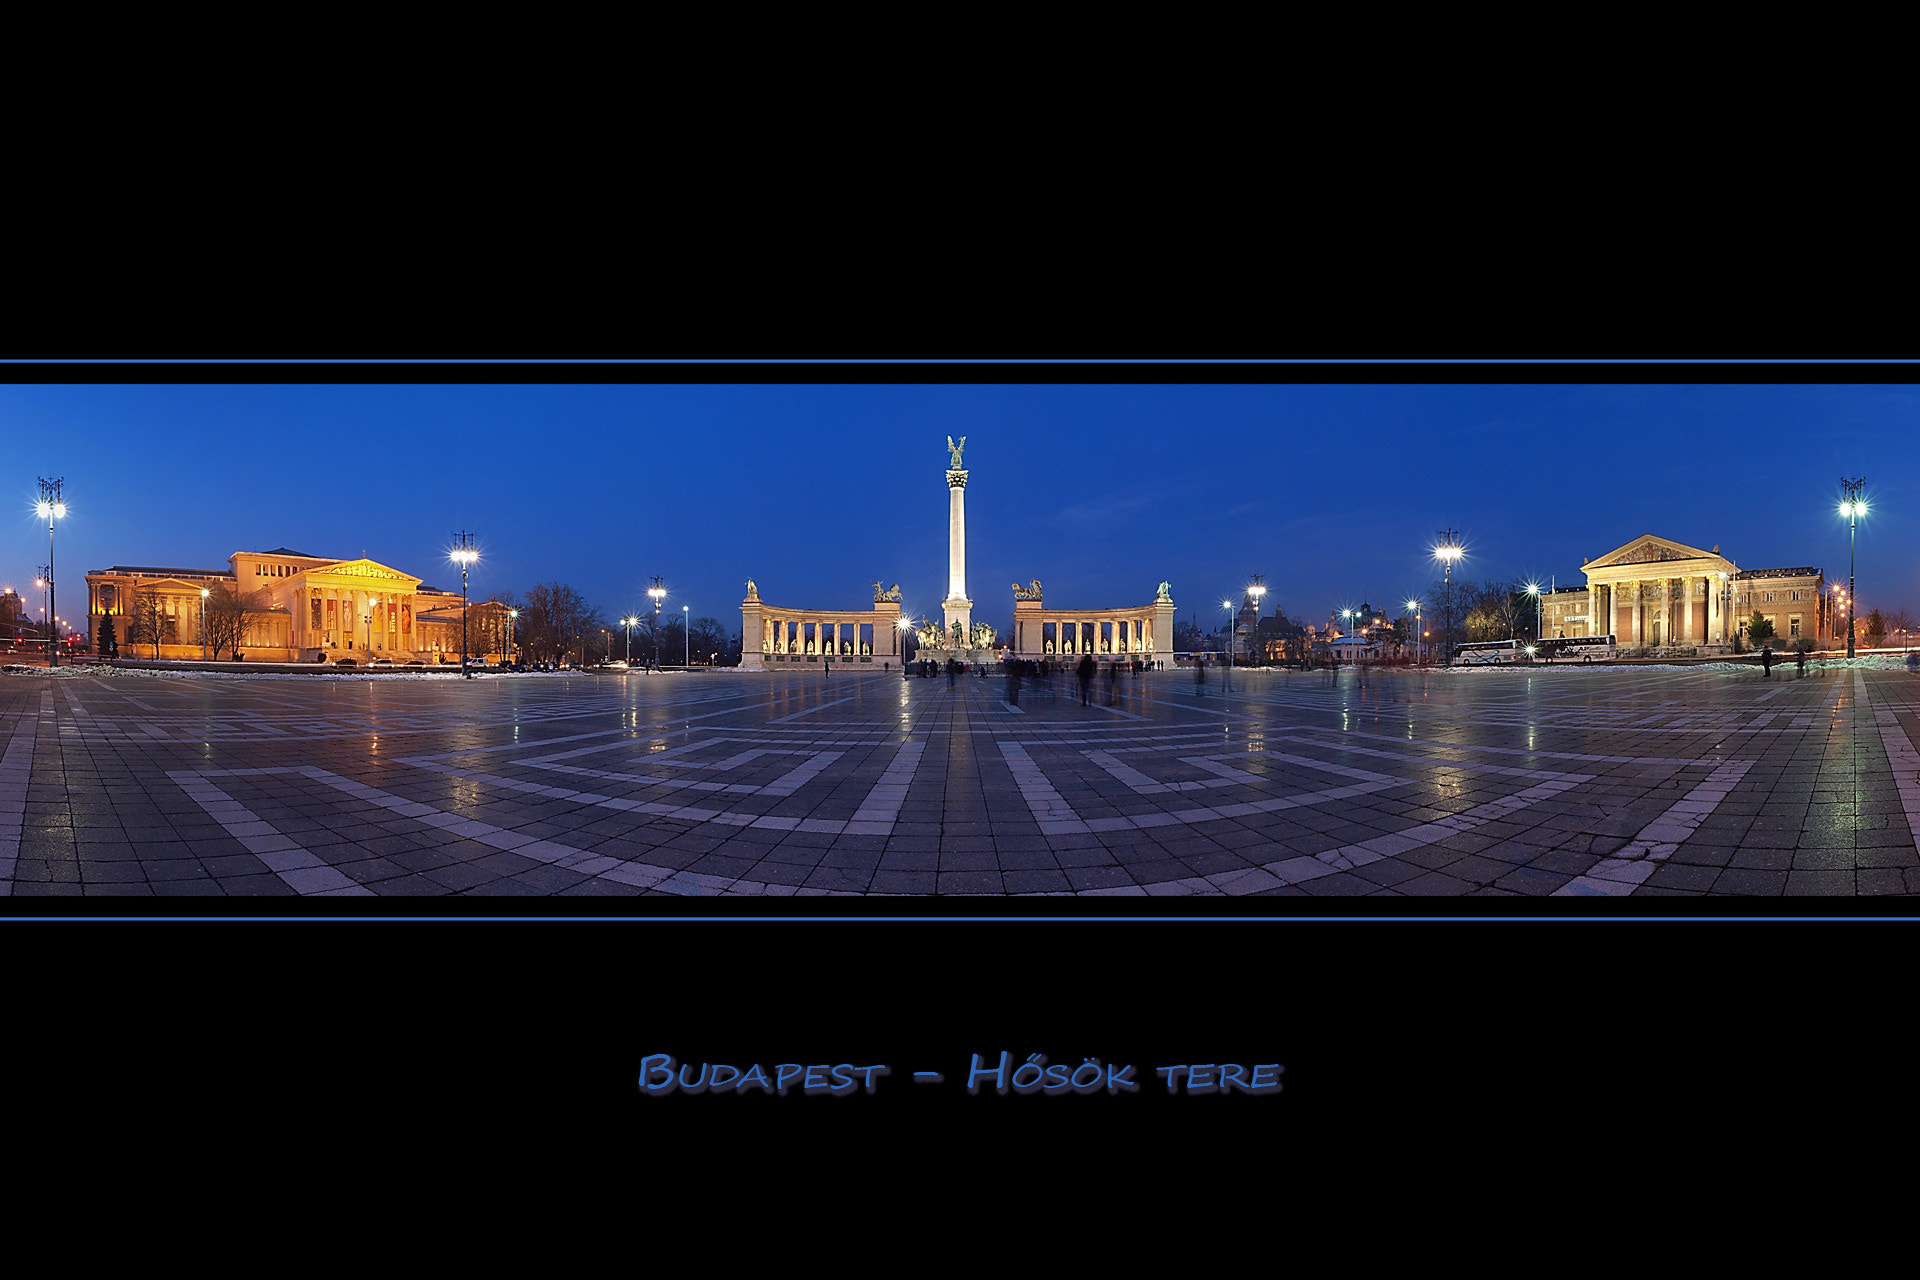 Photograph Hero's Square by HGL _Photo on 500px